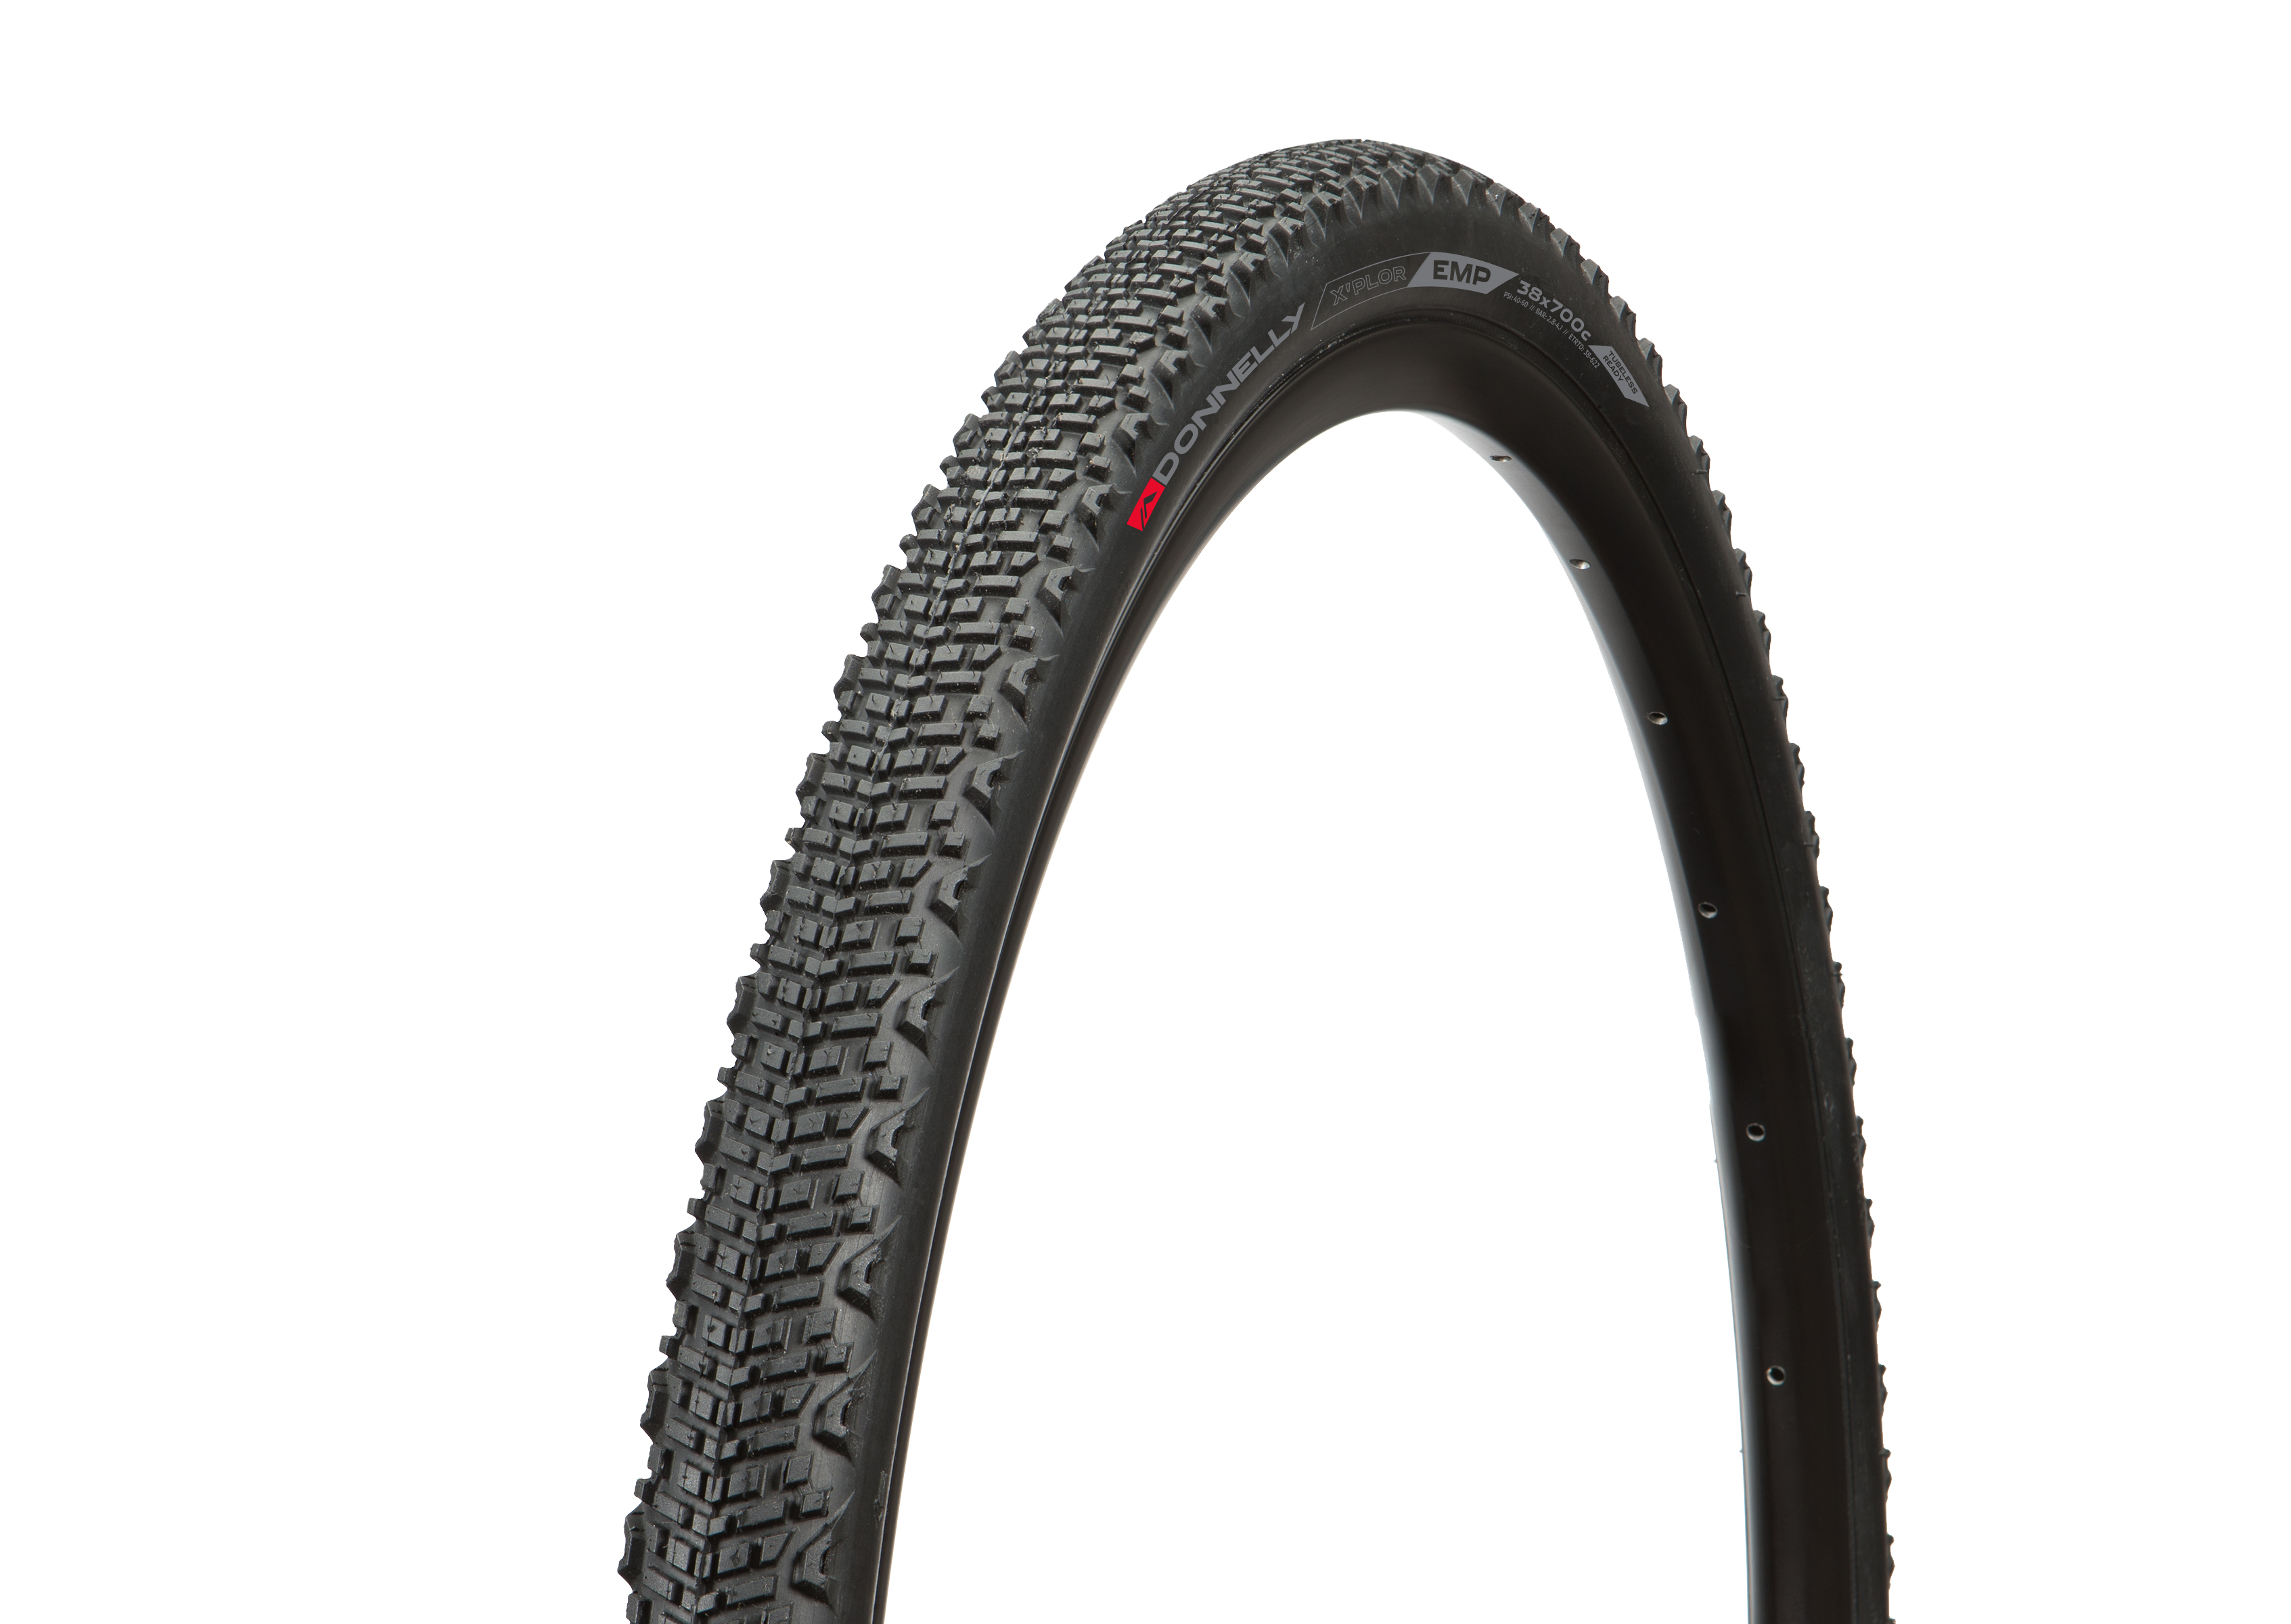 Donnelly EMP Mixed Terrain Adventure Gravel Bicycle Tires THUMBNAIL